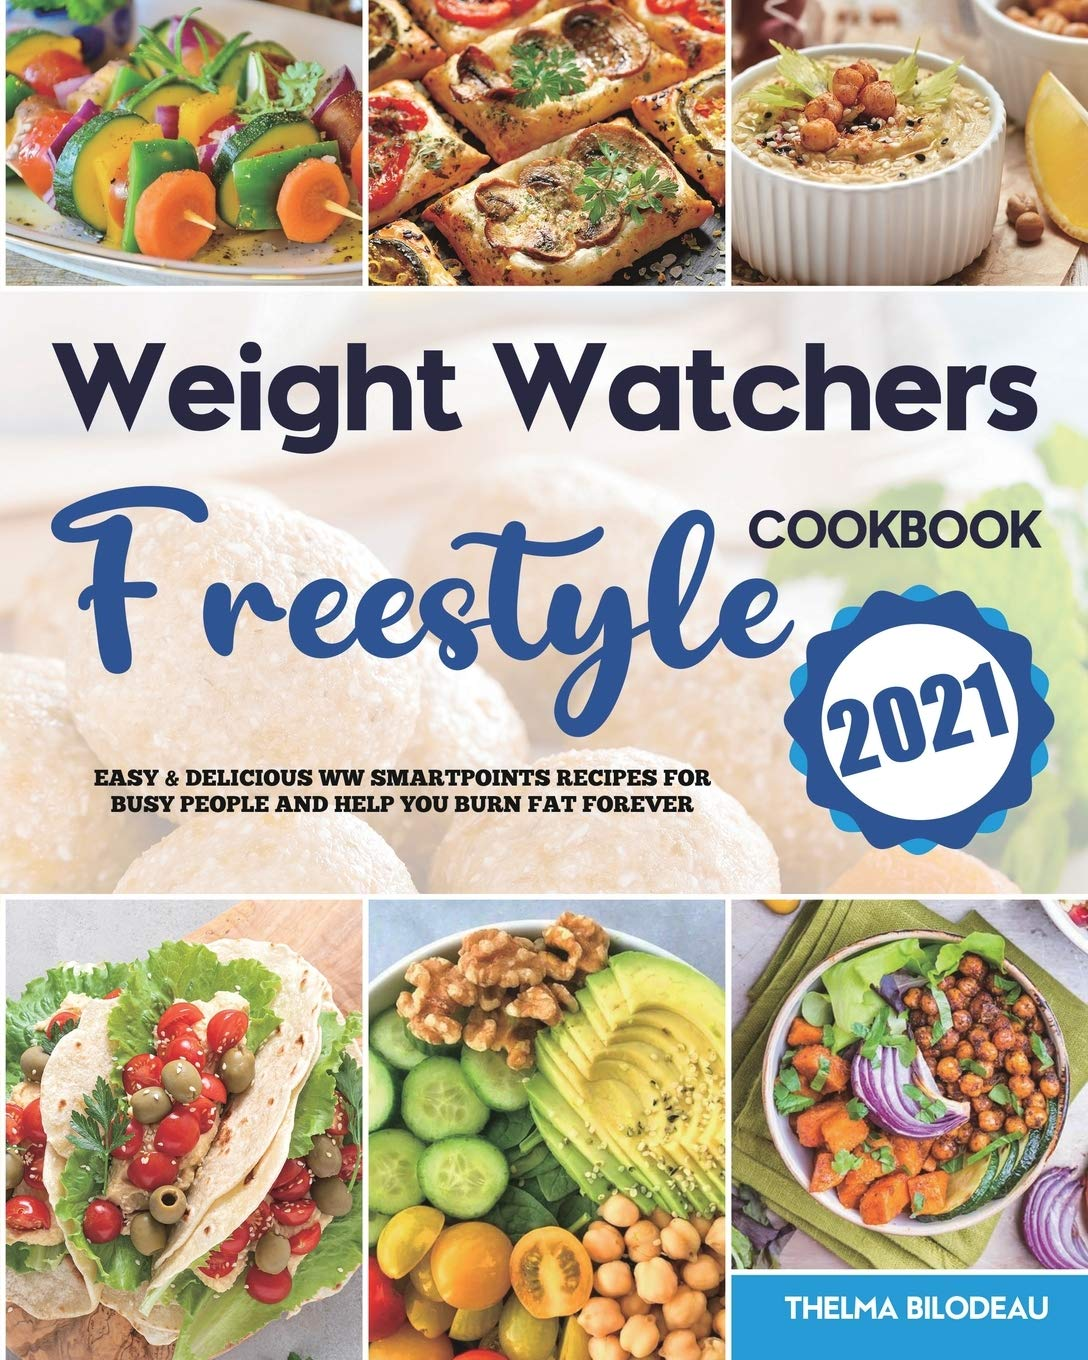 Weight Watchers Freestyle Cookbook 2021: Easy & Delicious WW SmartPoints Recipes for Busy People and Help You Burn Fat Forever 1